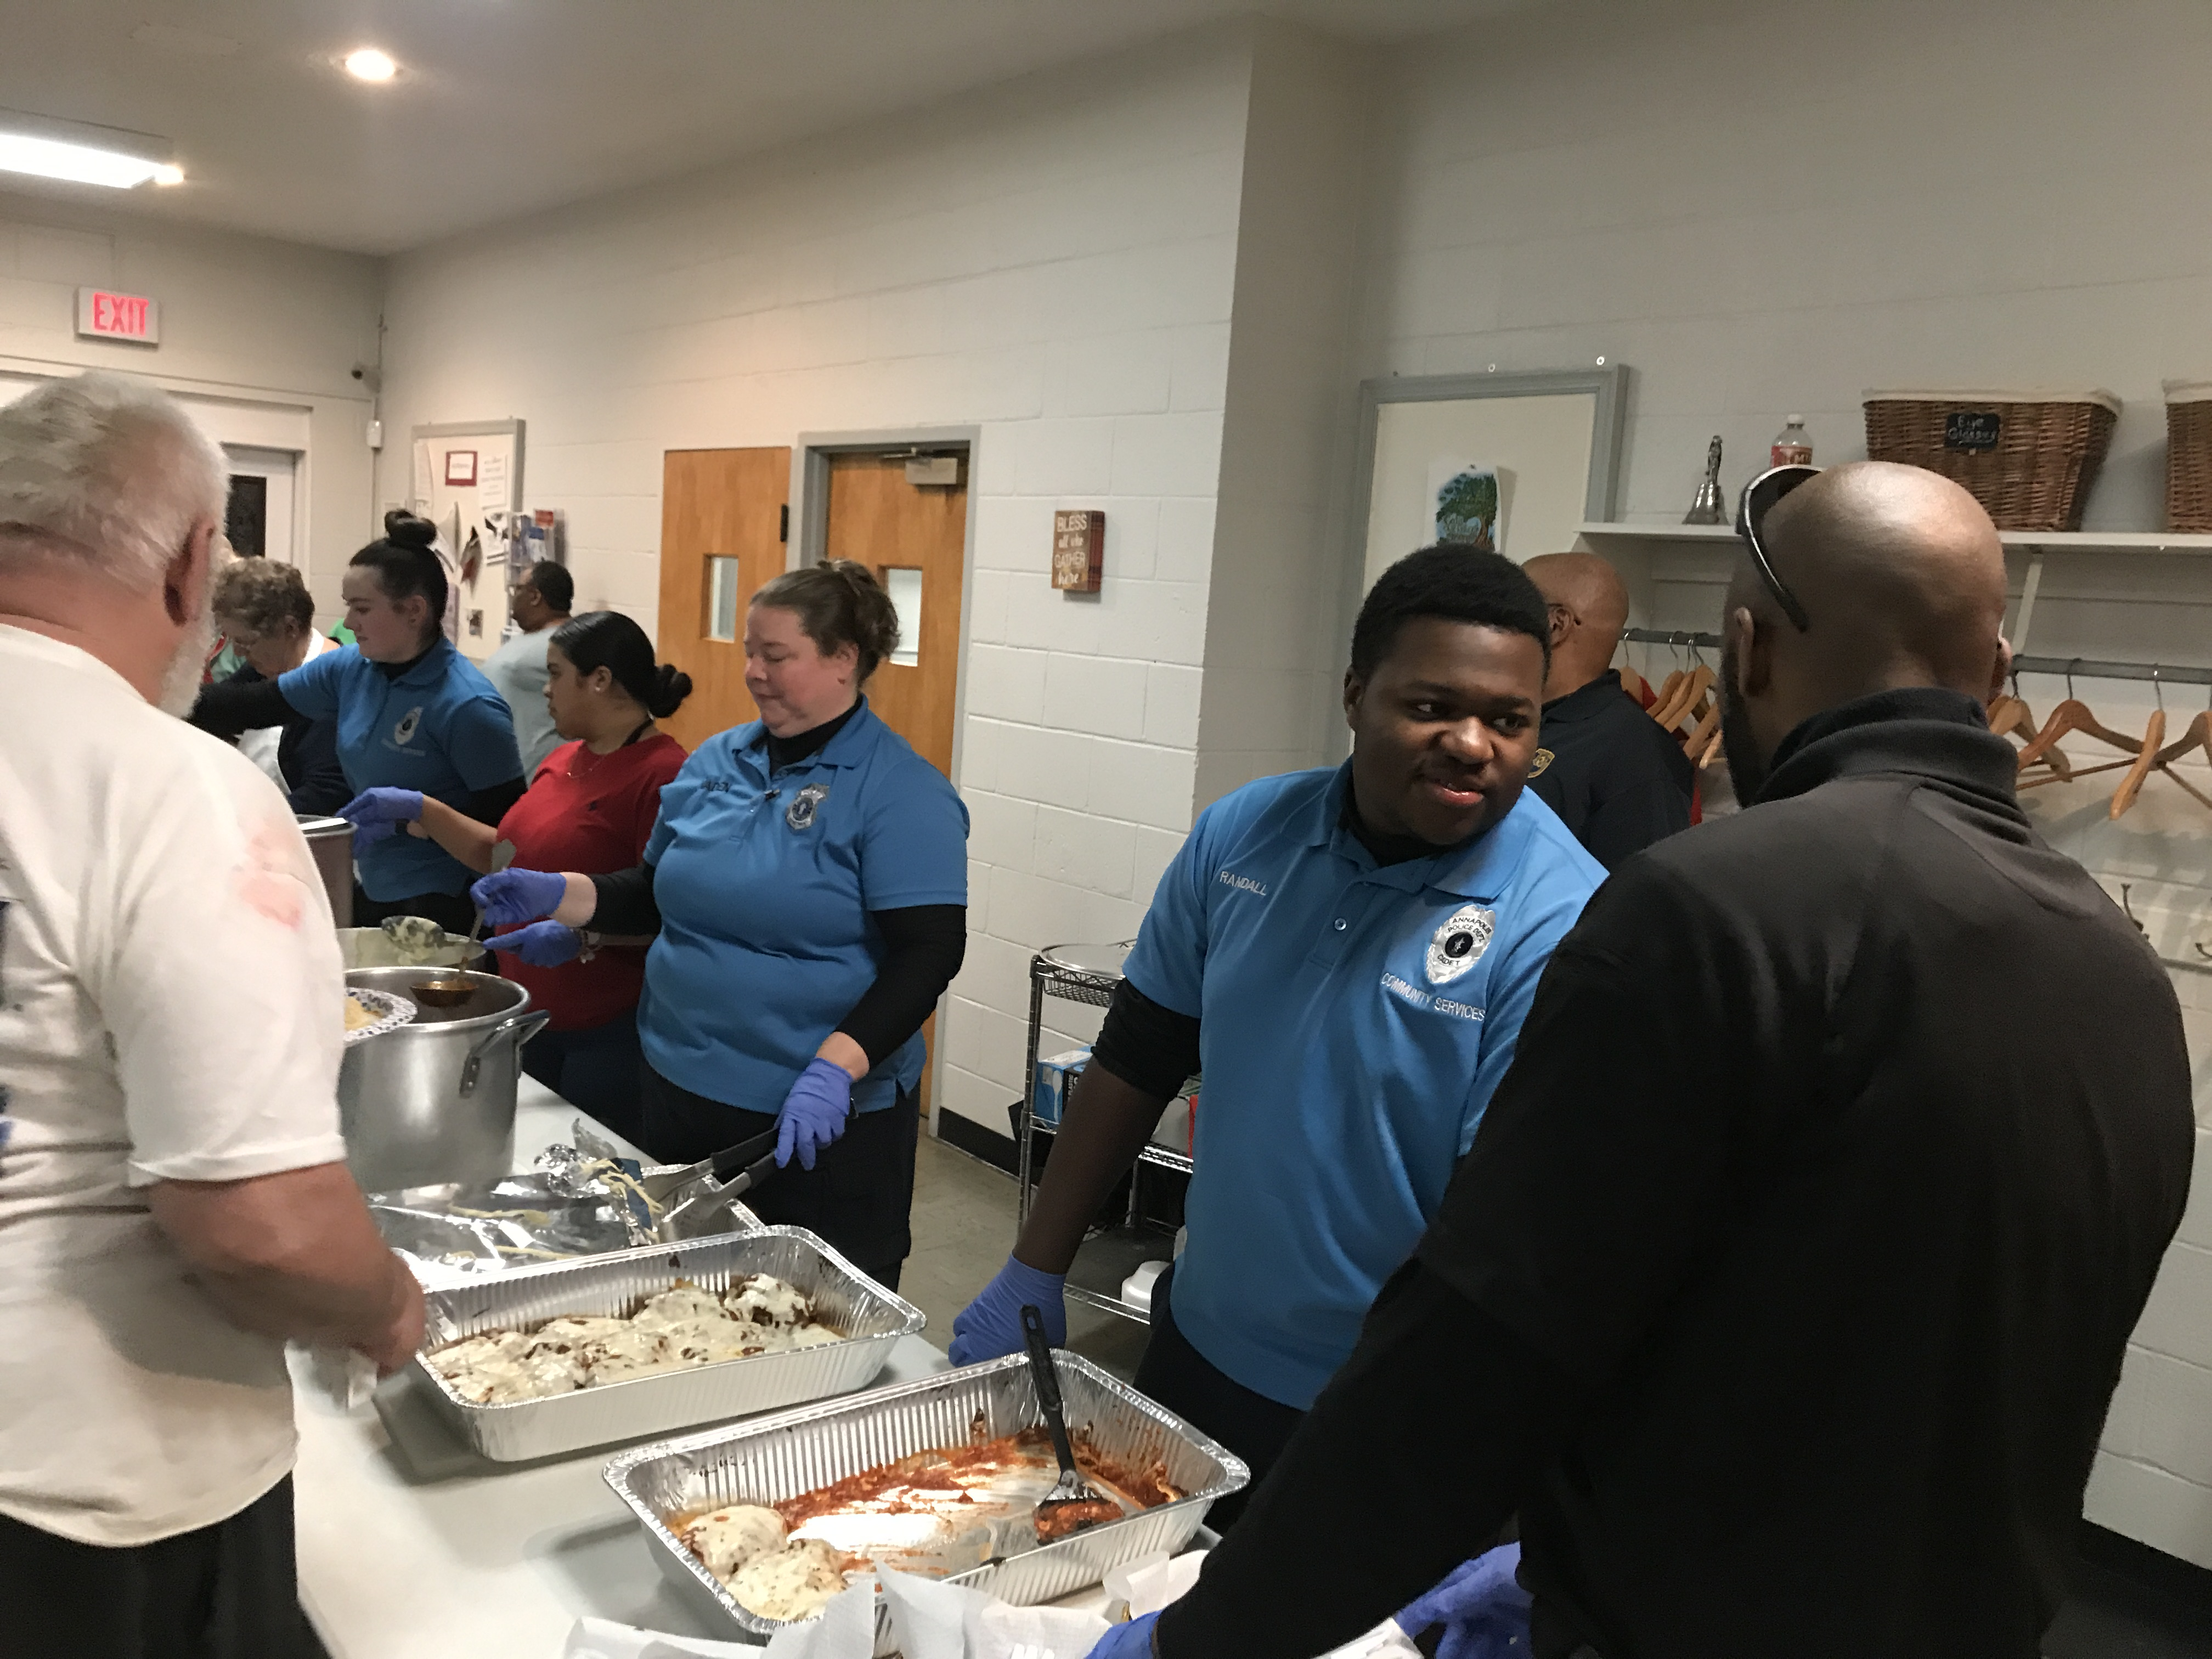 A group of police department employees stand serving food.